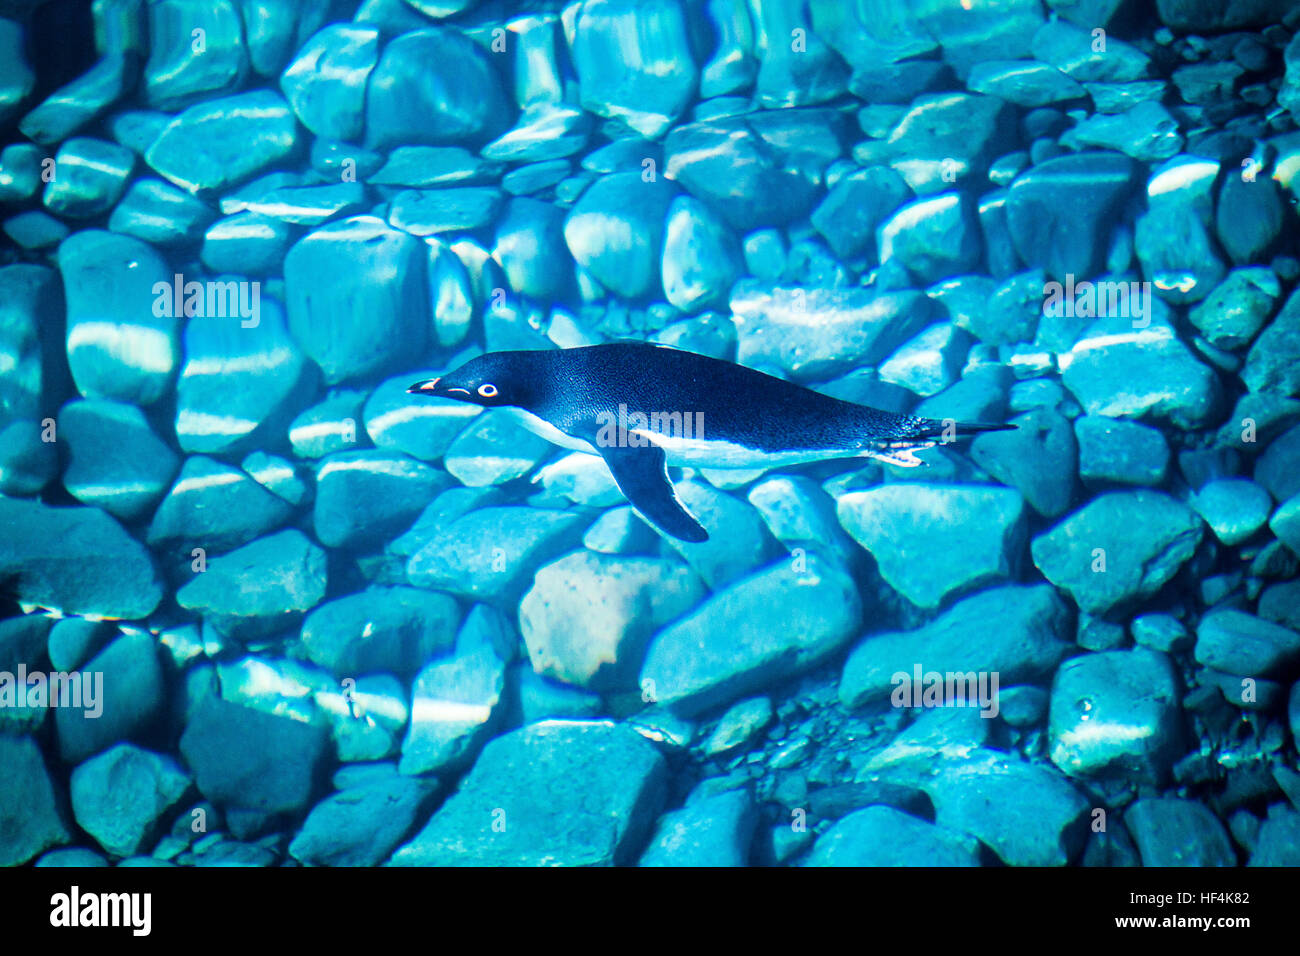 An Adelie penguin swims through the clear blue waters off Paulet Island, Antarctica - Stock Image